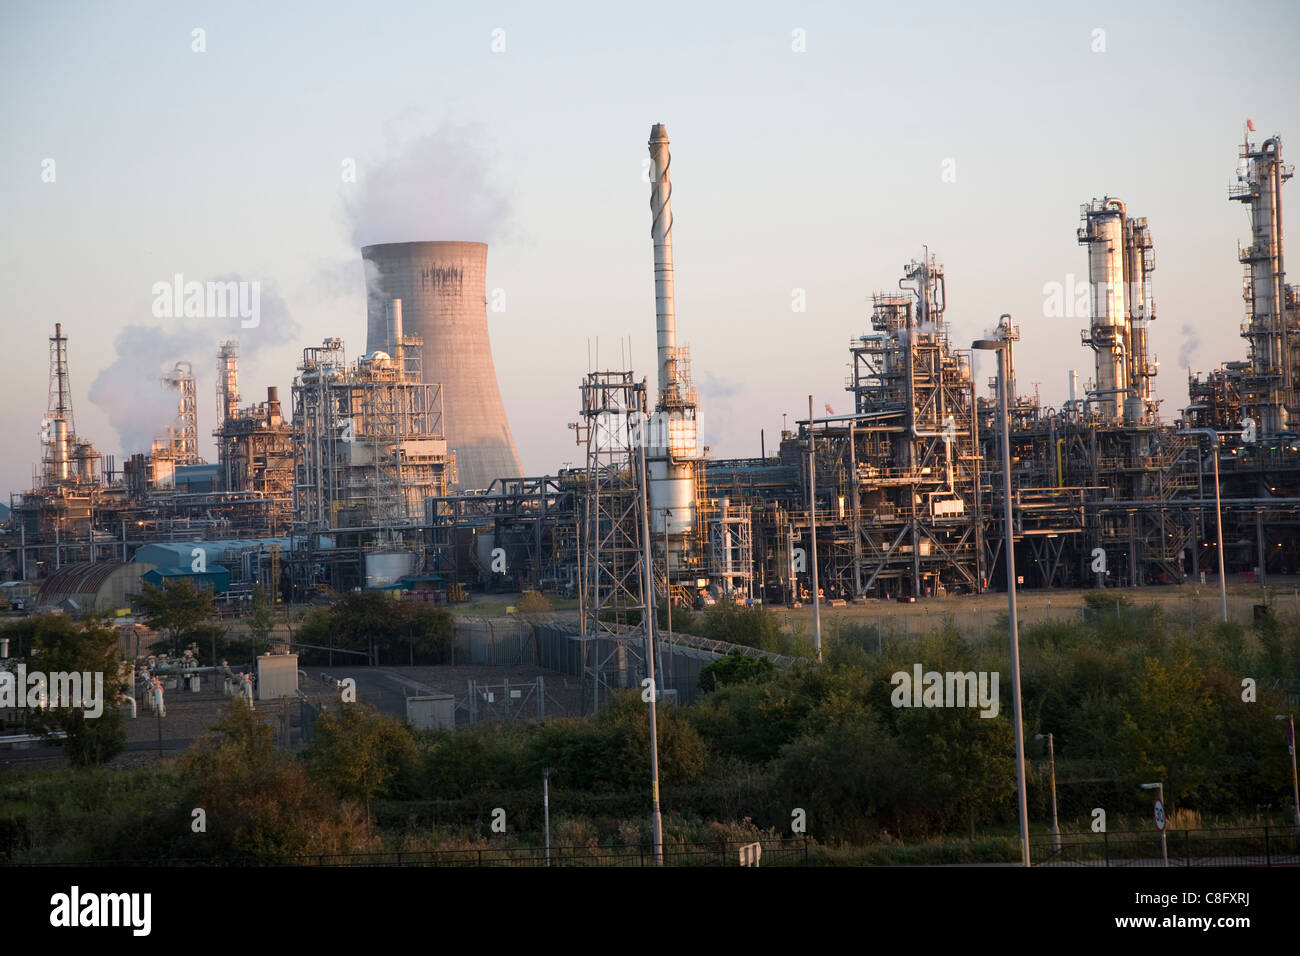 Heavy industry BP chemical works, Saltend, Hull, Yorkshire, England - Stock Image